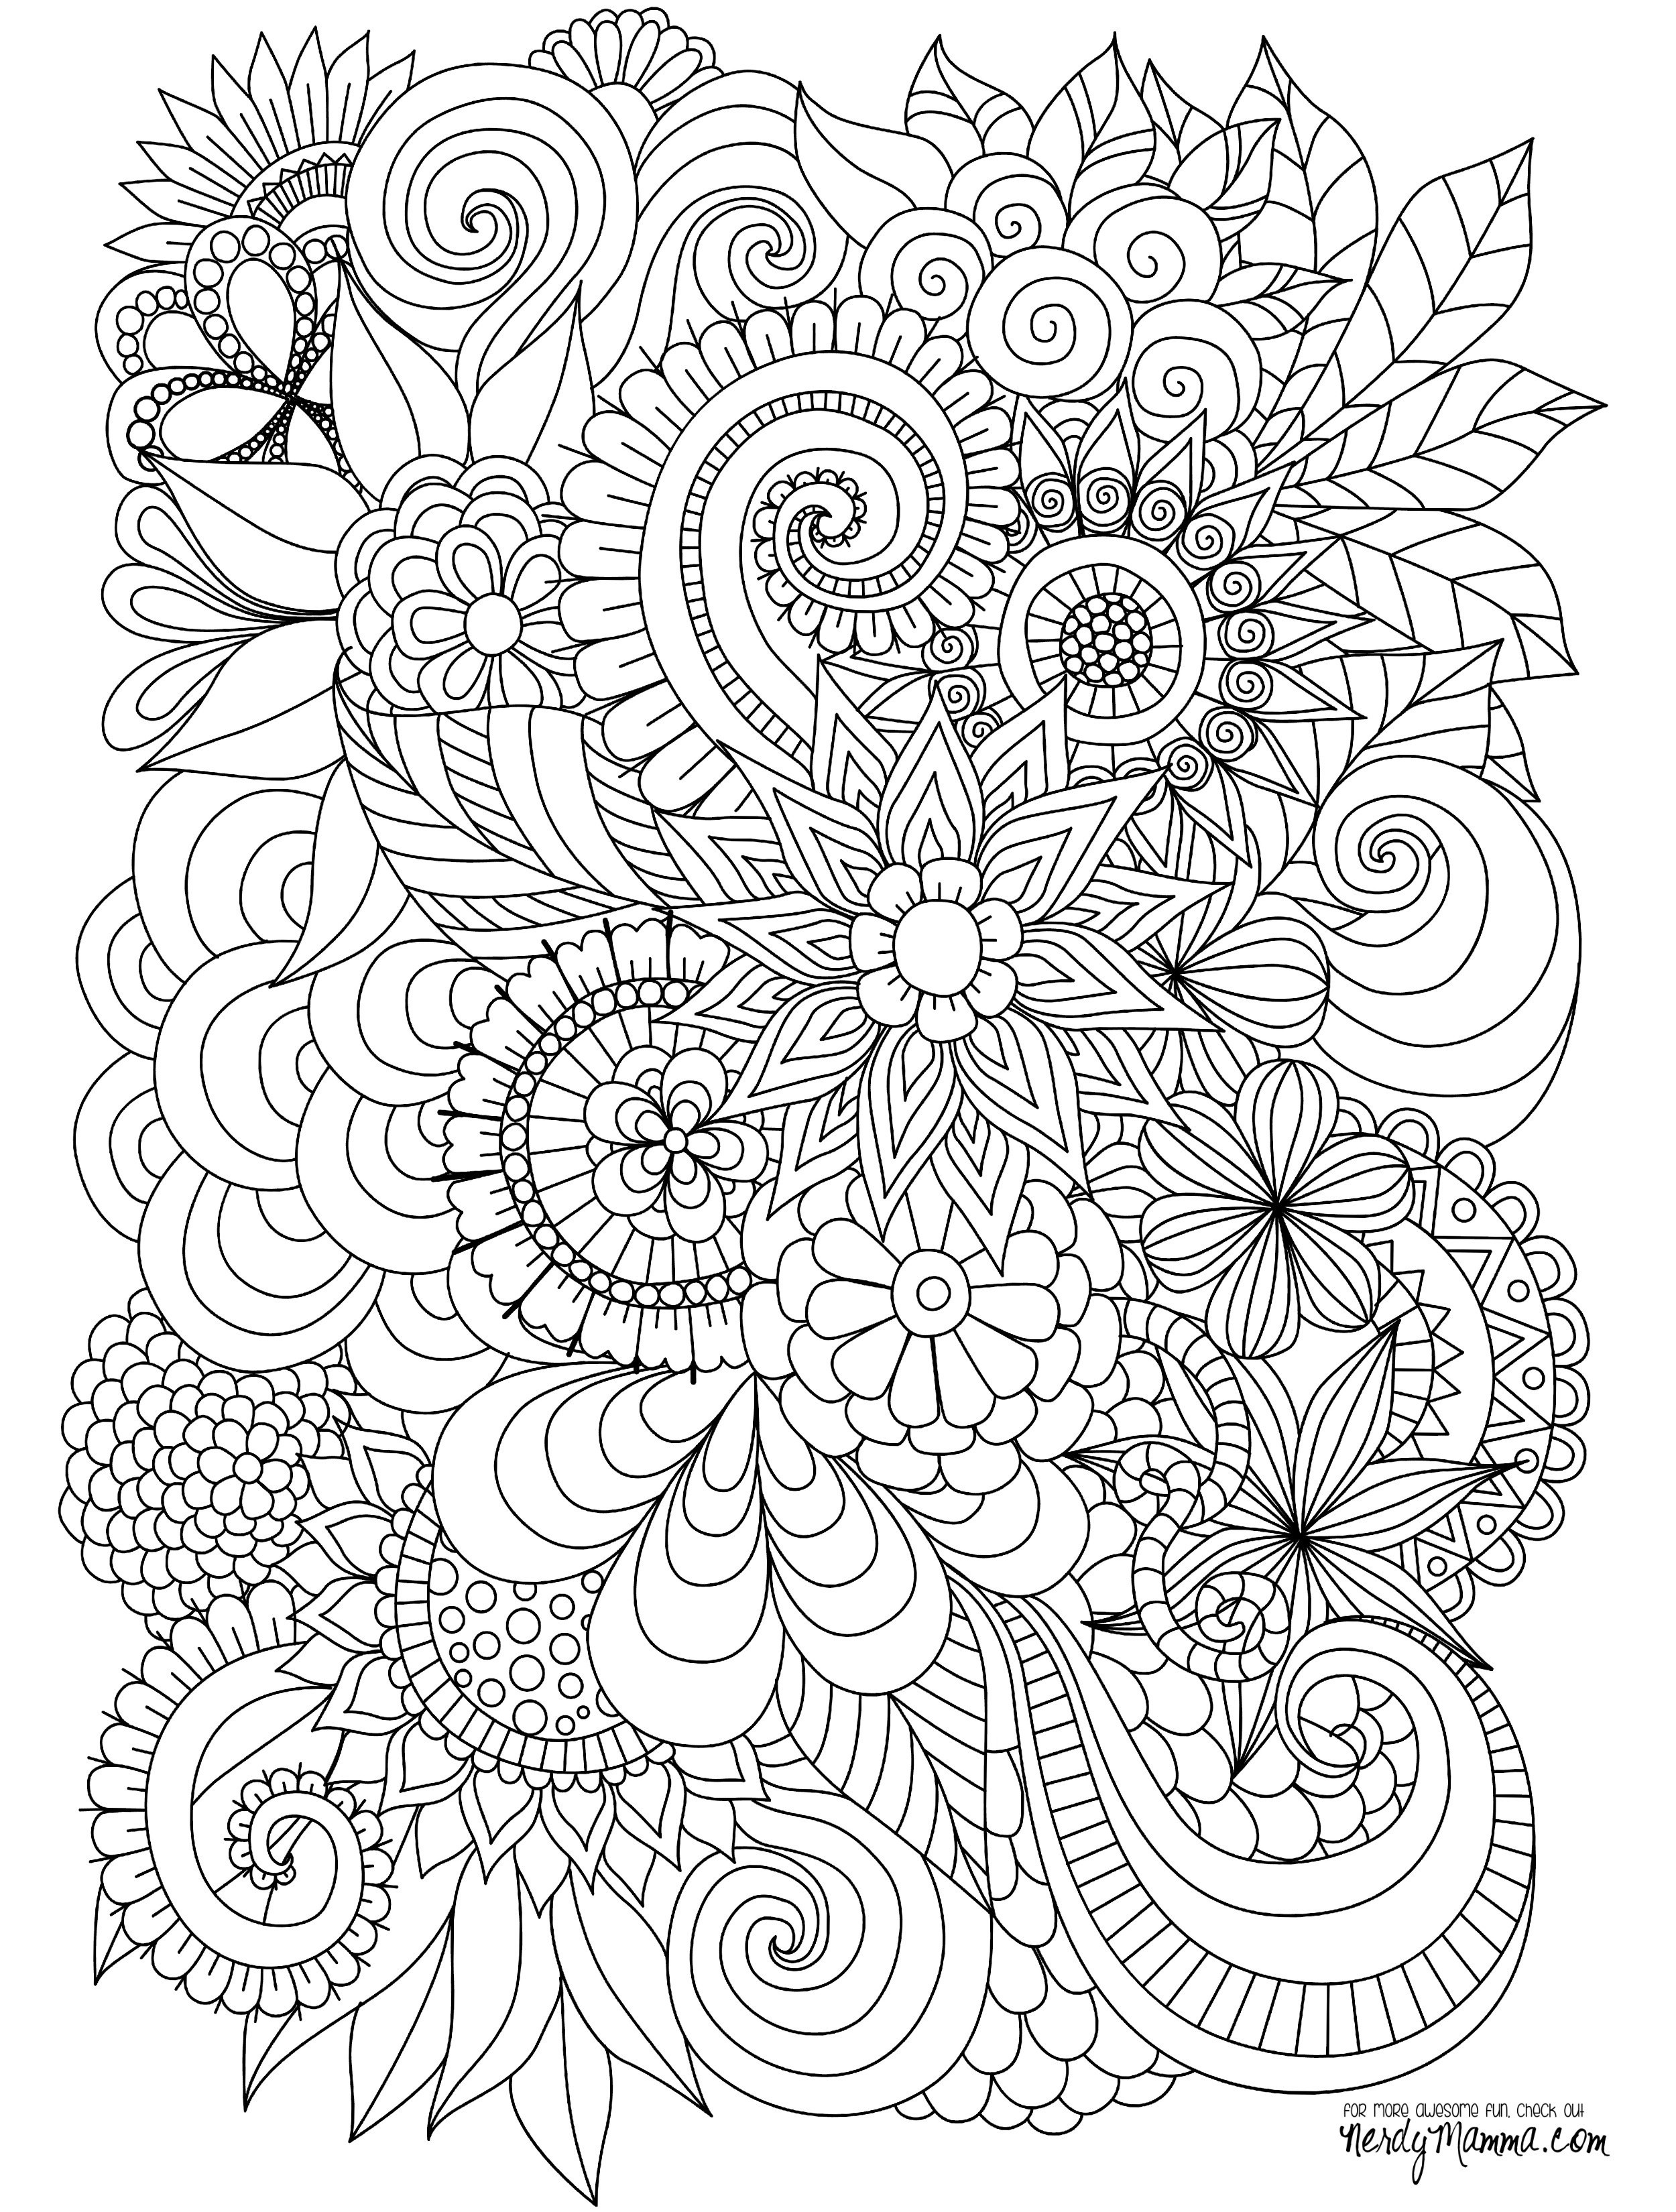 zentangle patterns coloring pages zentangle patterns coloring pages at getcoloringscom pages zentangle coloring patterns